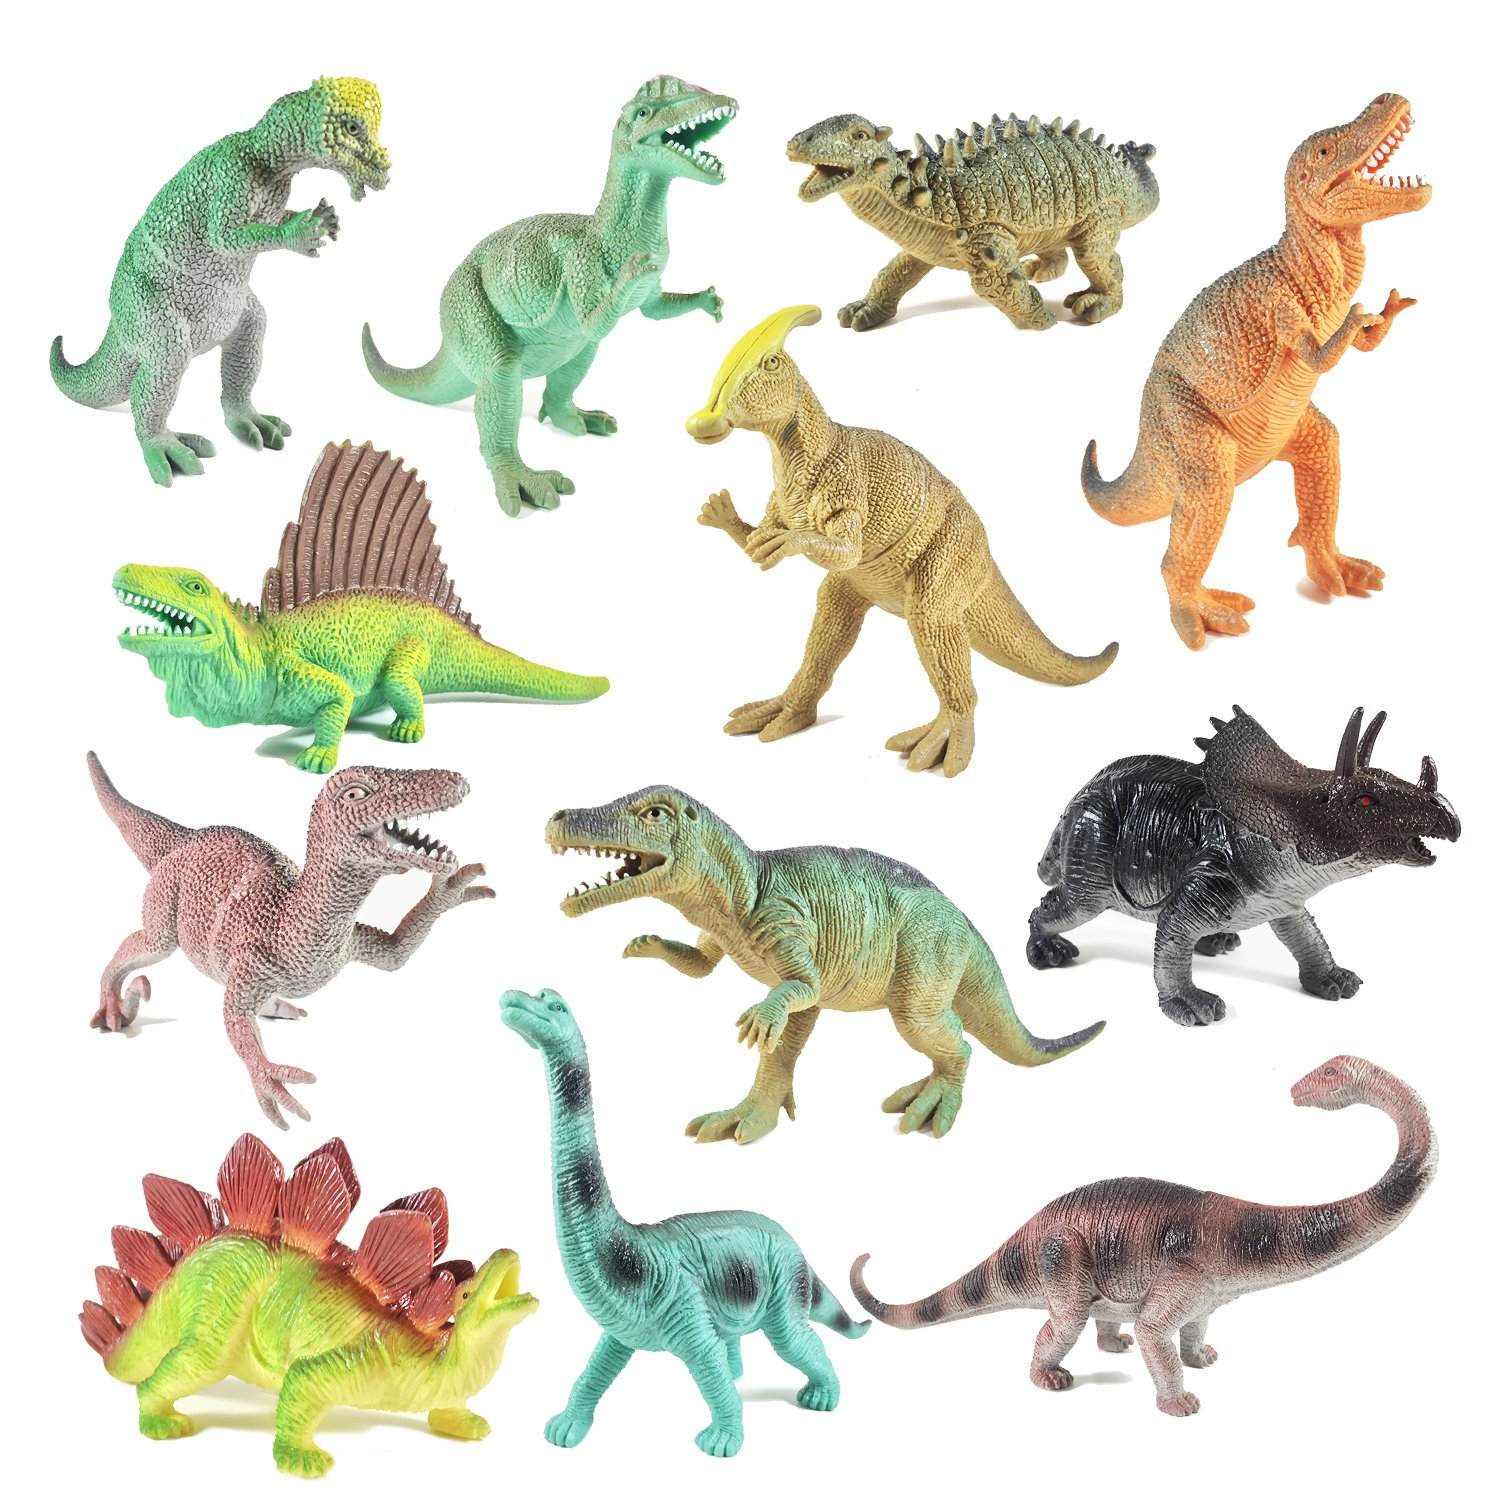 Boley 12 Pack 9'' Educational Dinosaur Toys - Kids Realistic Toy Dinosaur Figures for Cool Kids and Toddler Education! (T-rex, Triceratops, Velociraptor, etc)